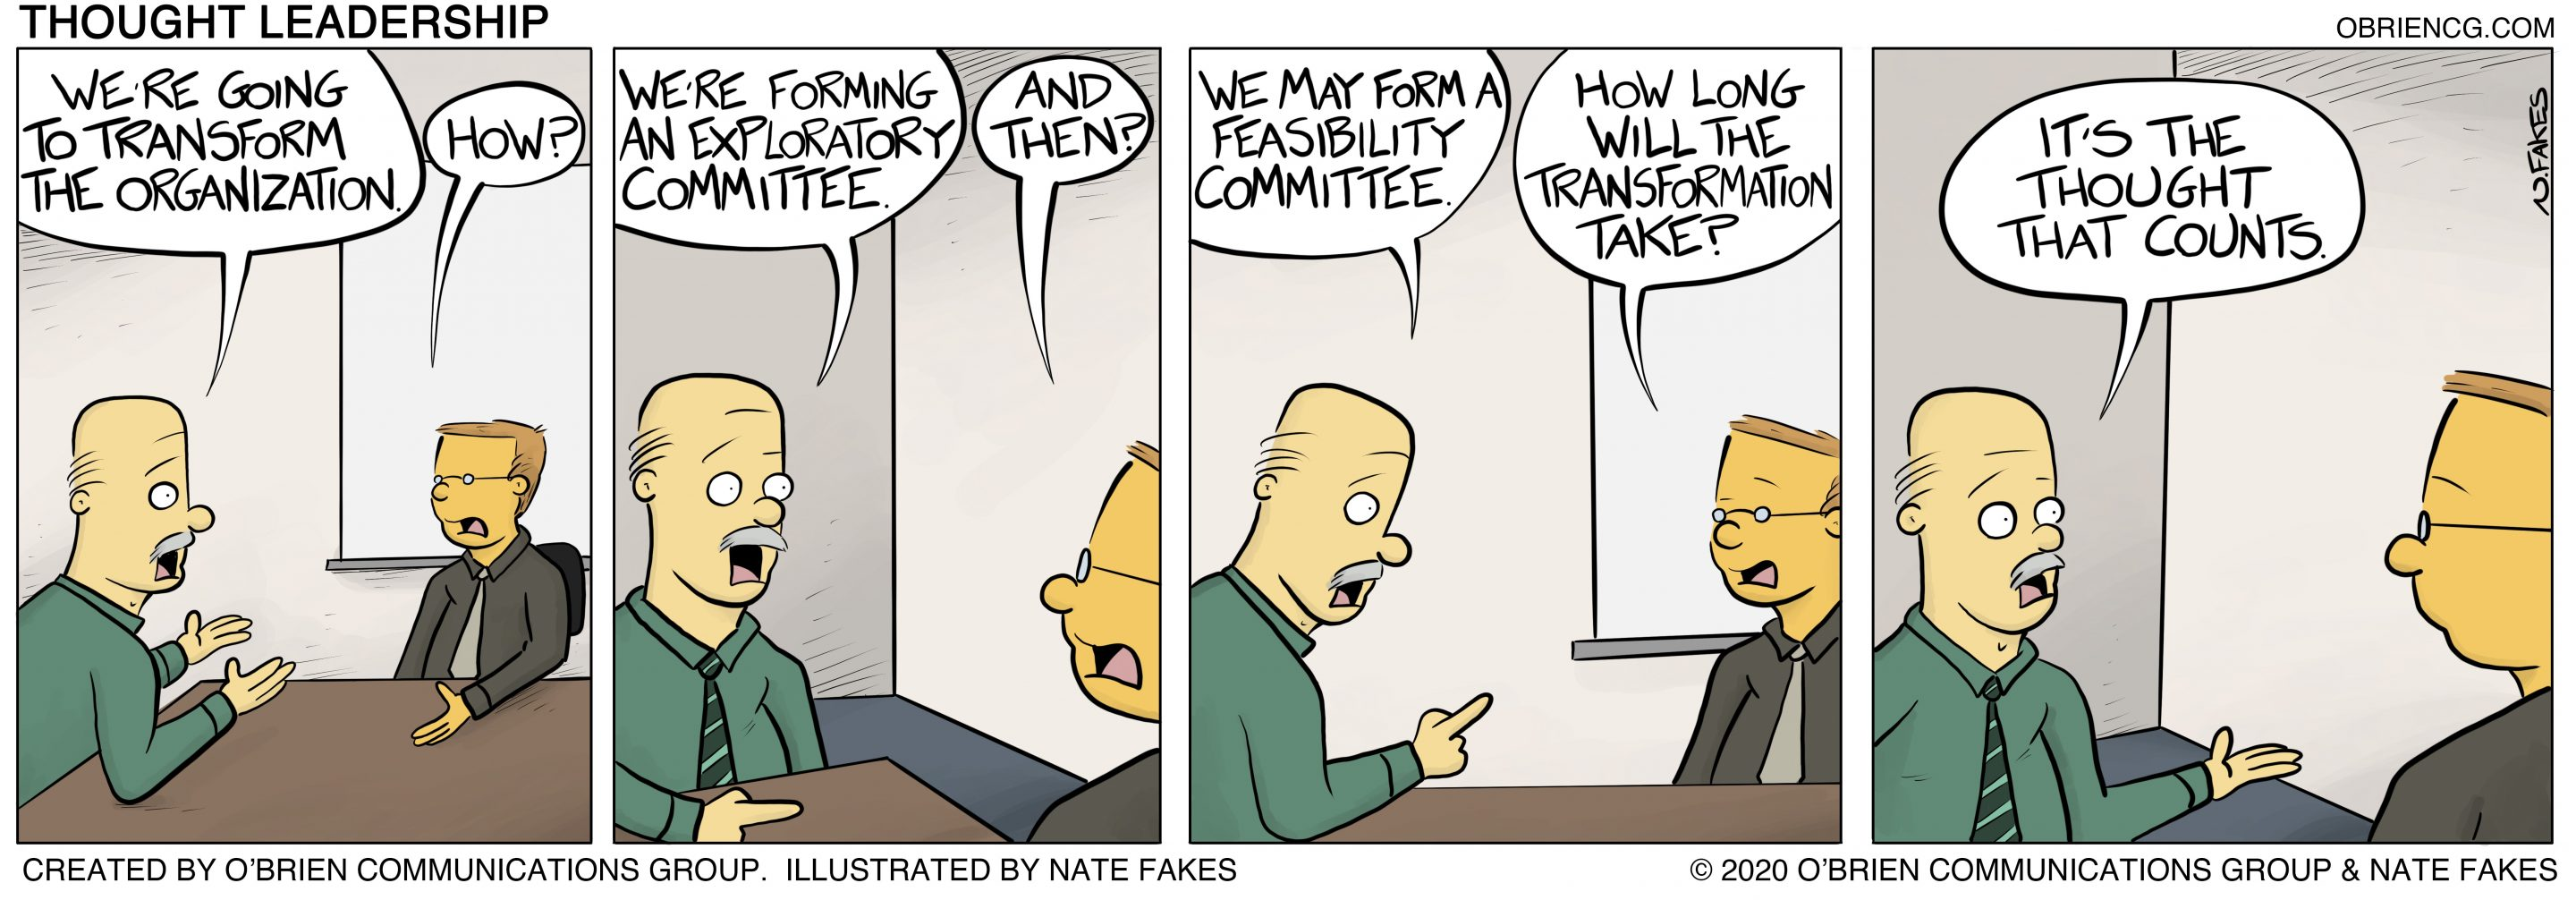 Thought Leadership - A comic by O'Brien Communications Group